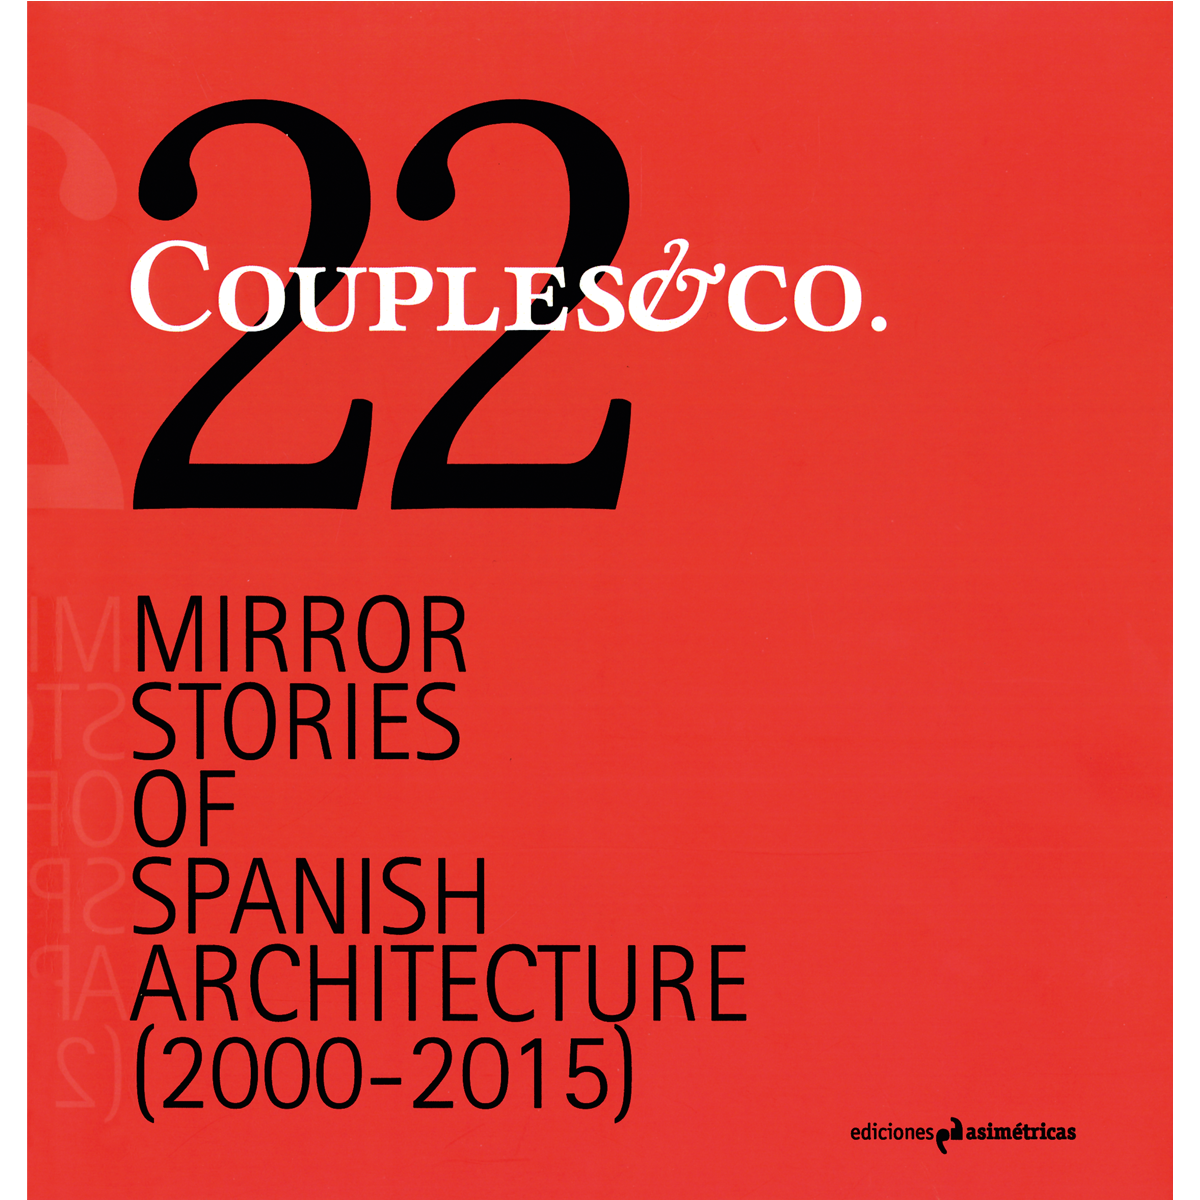 22 Couples & Co.